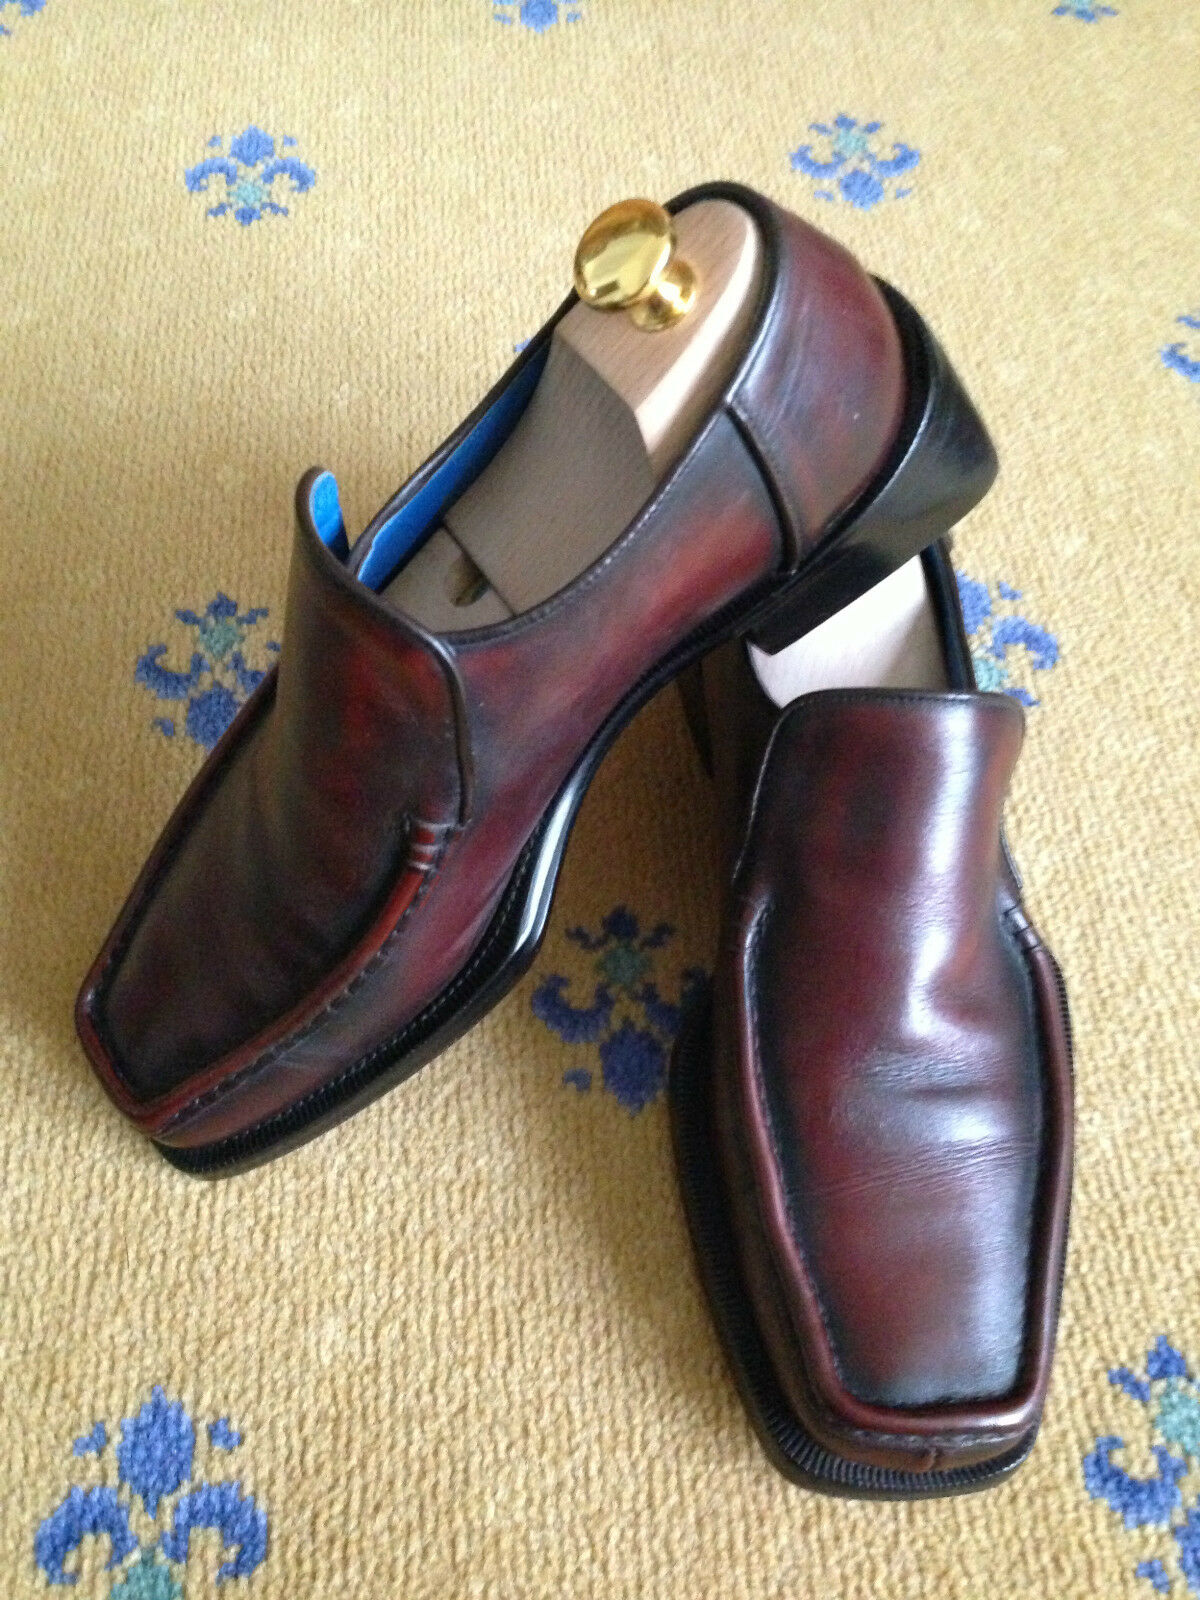 OLIVER SWEENEY MEN'S SHOES BROWN LEATHER LOAFERS MOCCASIN UK 7.5 US 8.5 EU 41.5